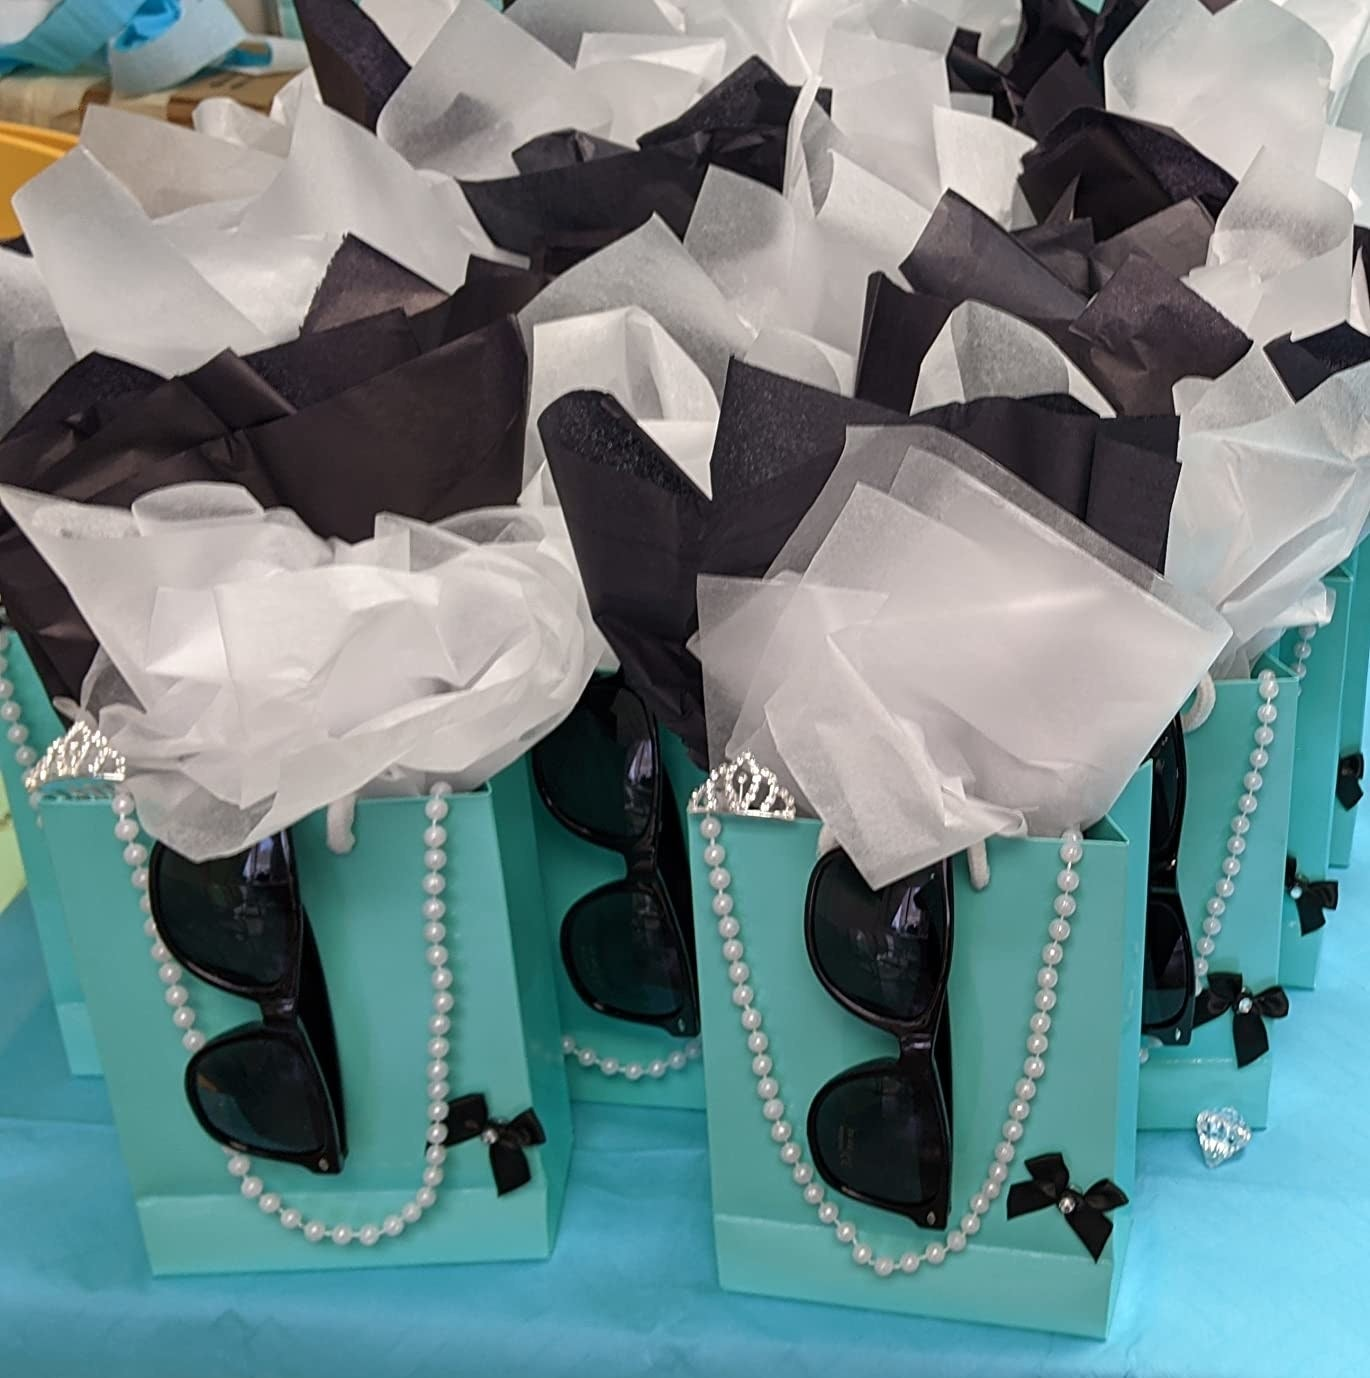 A reviewer photo of sunglasses on teal party bags with white tissues